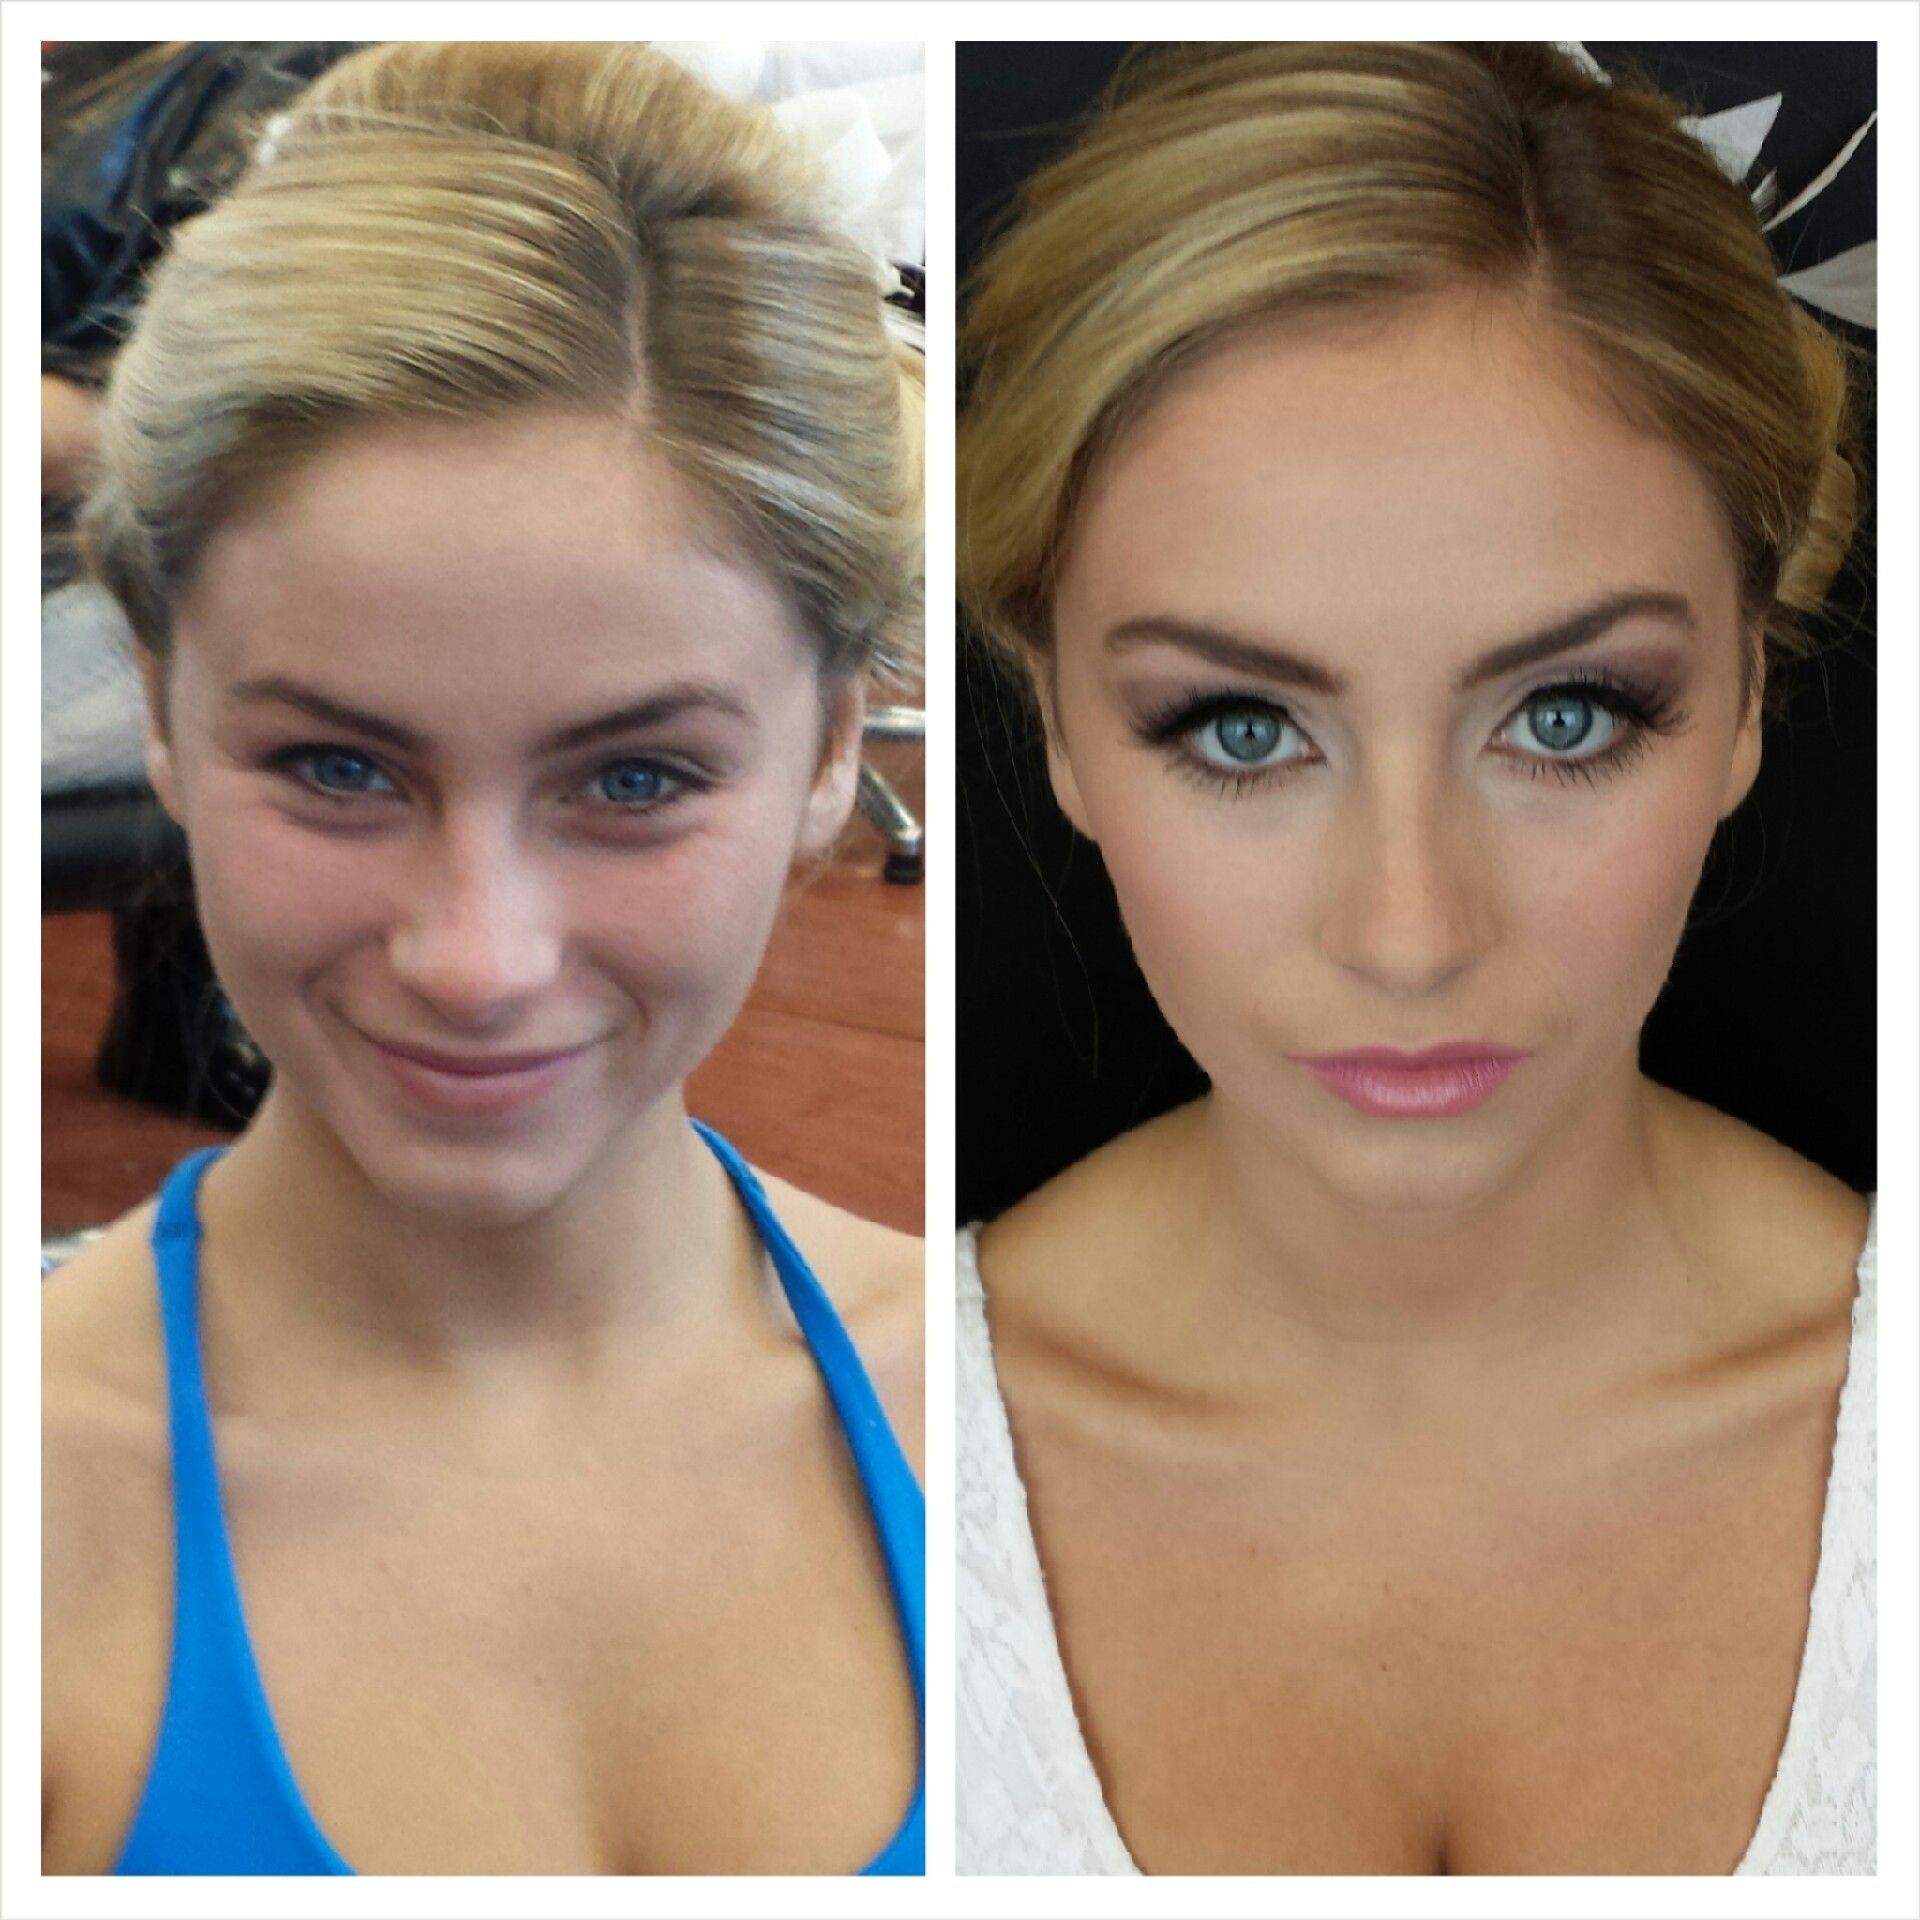 Before & After makeup application this morning for the